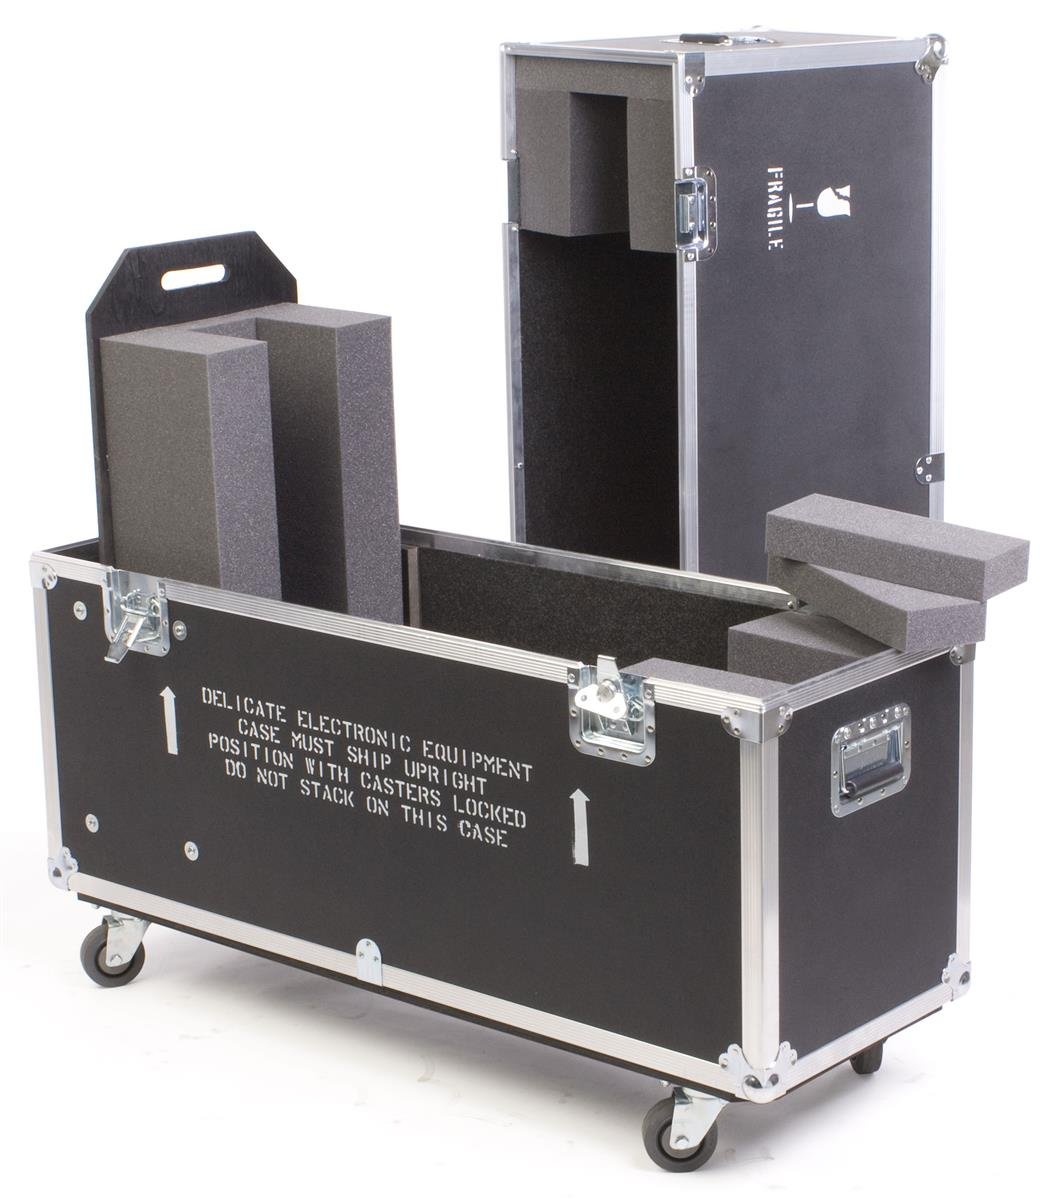 Flat Panel TV Travel Case, With Wheels And Handles, And EVA Foam Interior For 1 TV - Black Laminate Plywood